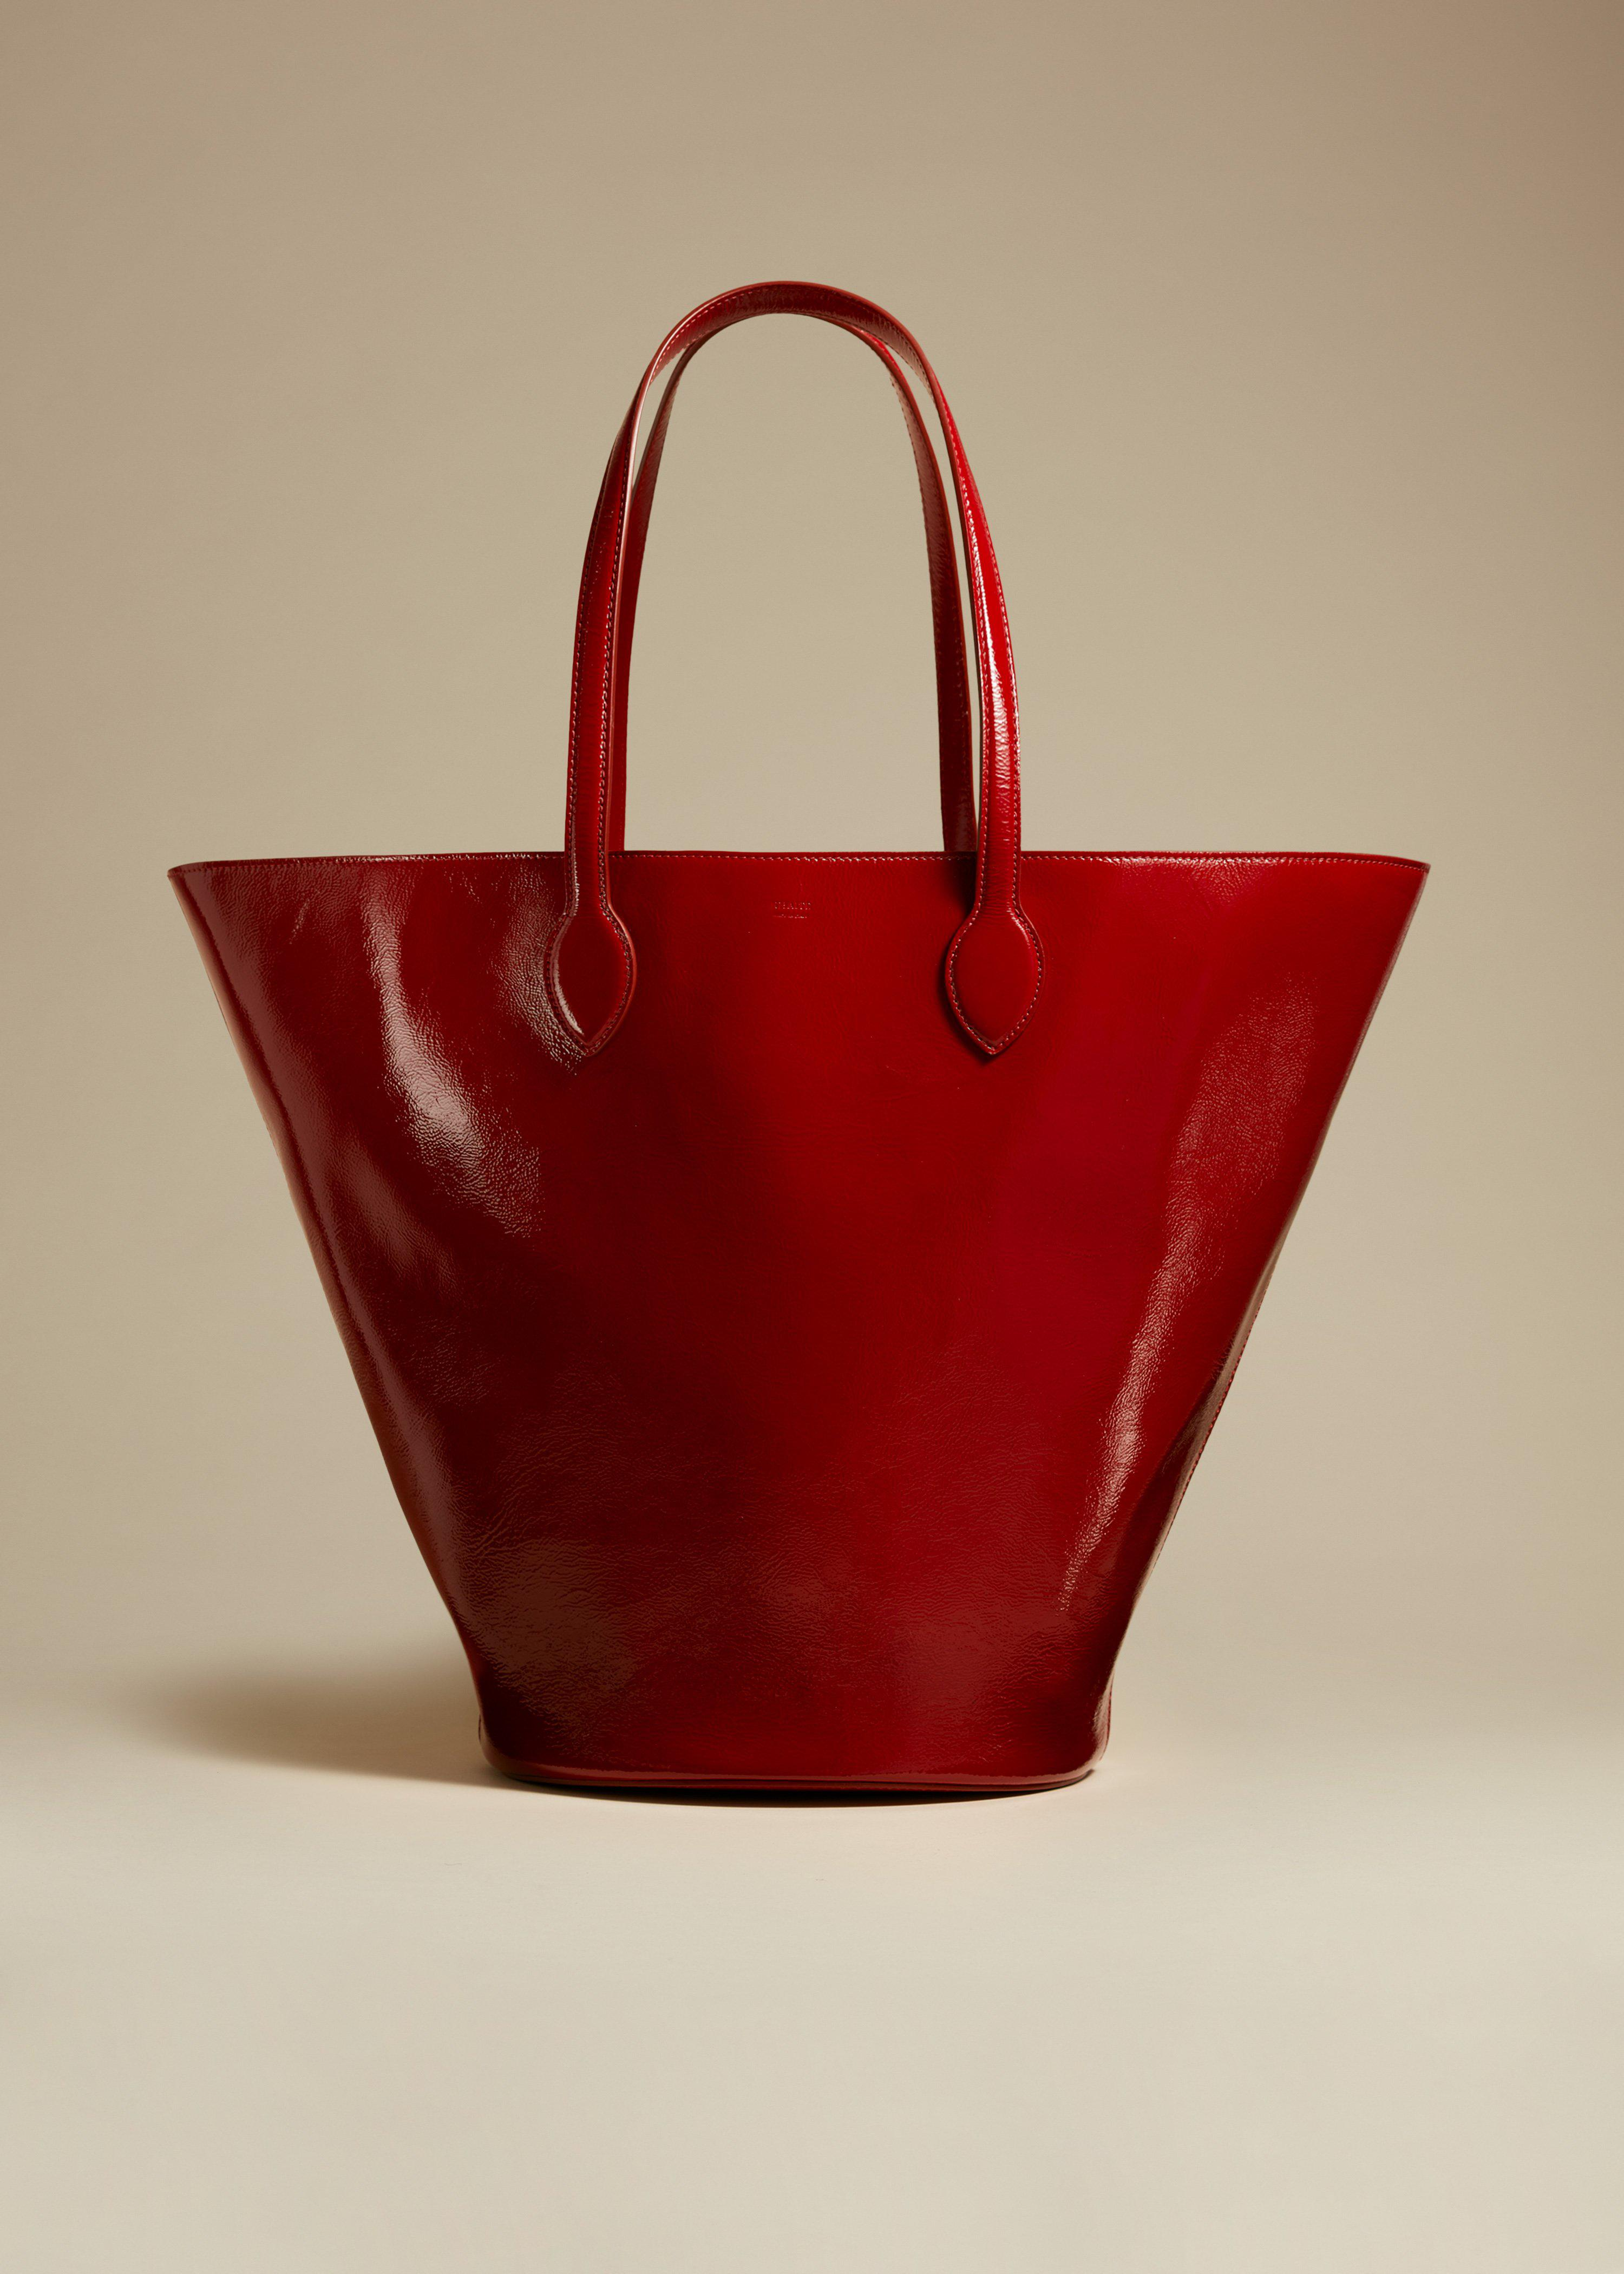 The Medium Osa Tote in Fire Red Patent Leather